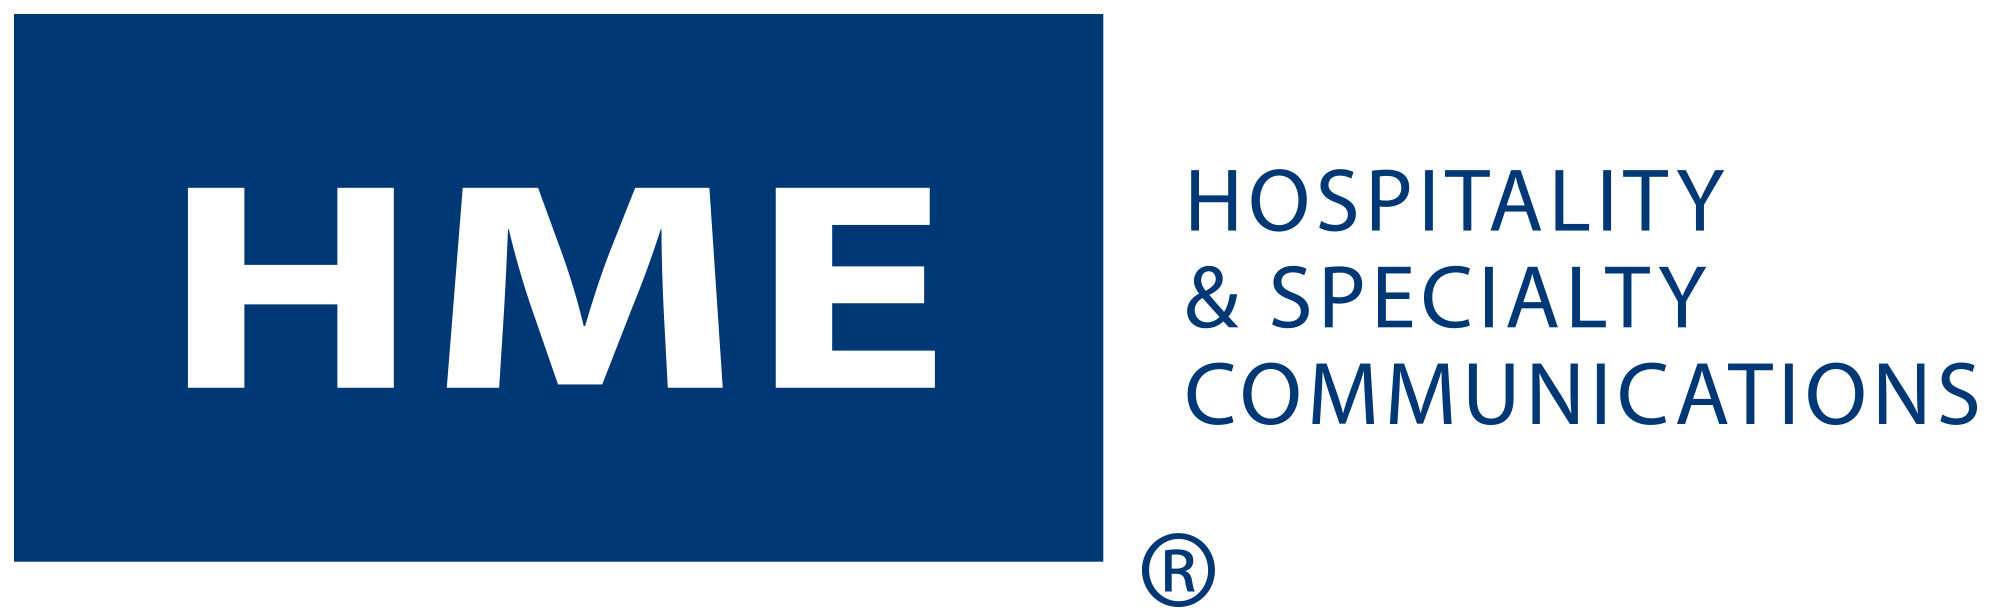 HME | Hospitality & Specialty Communications